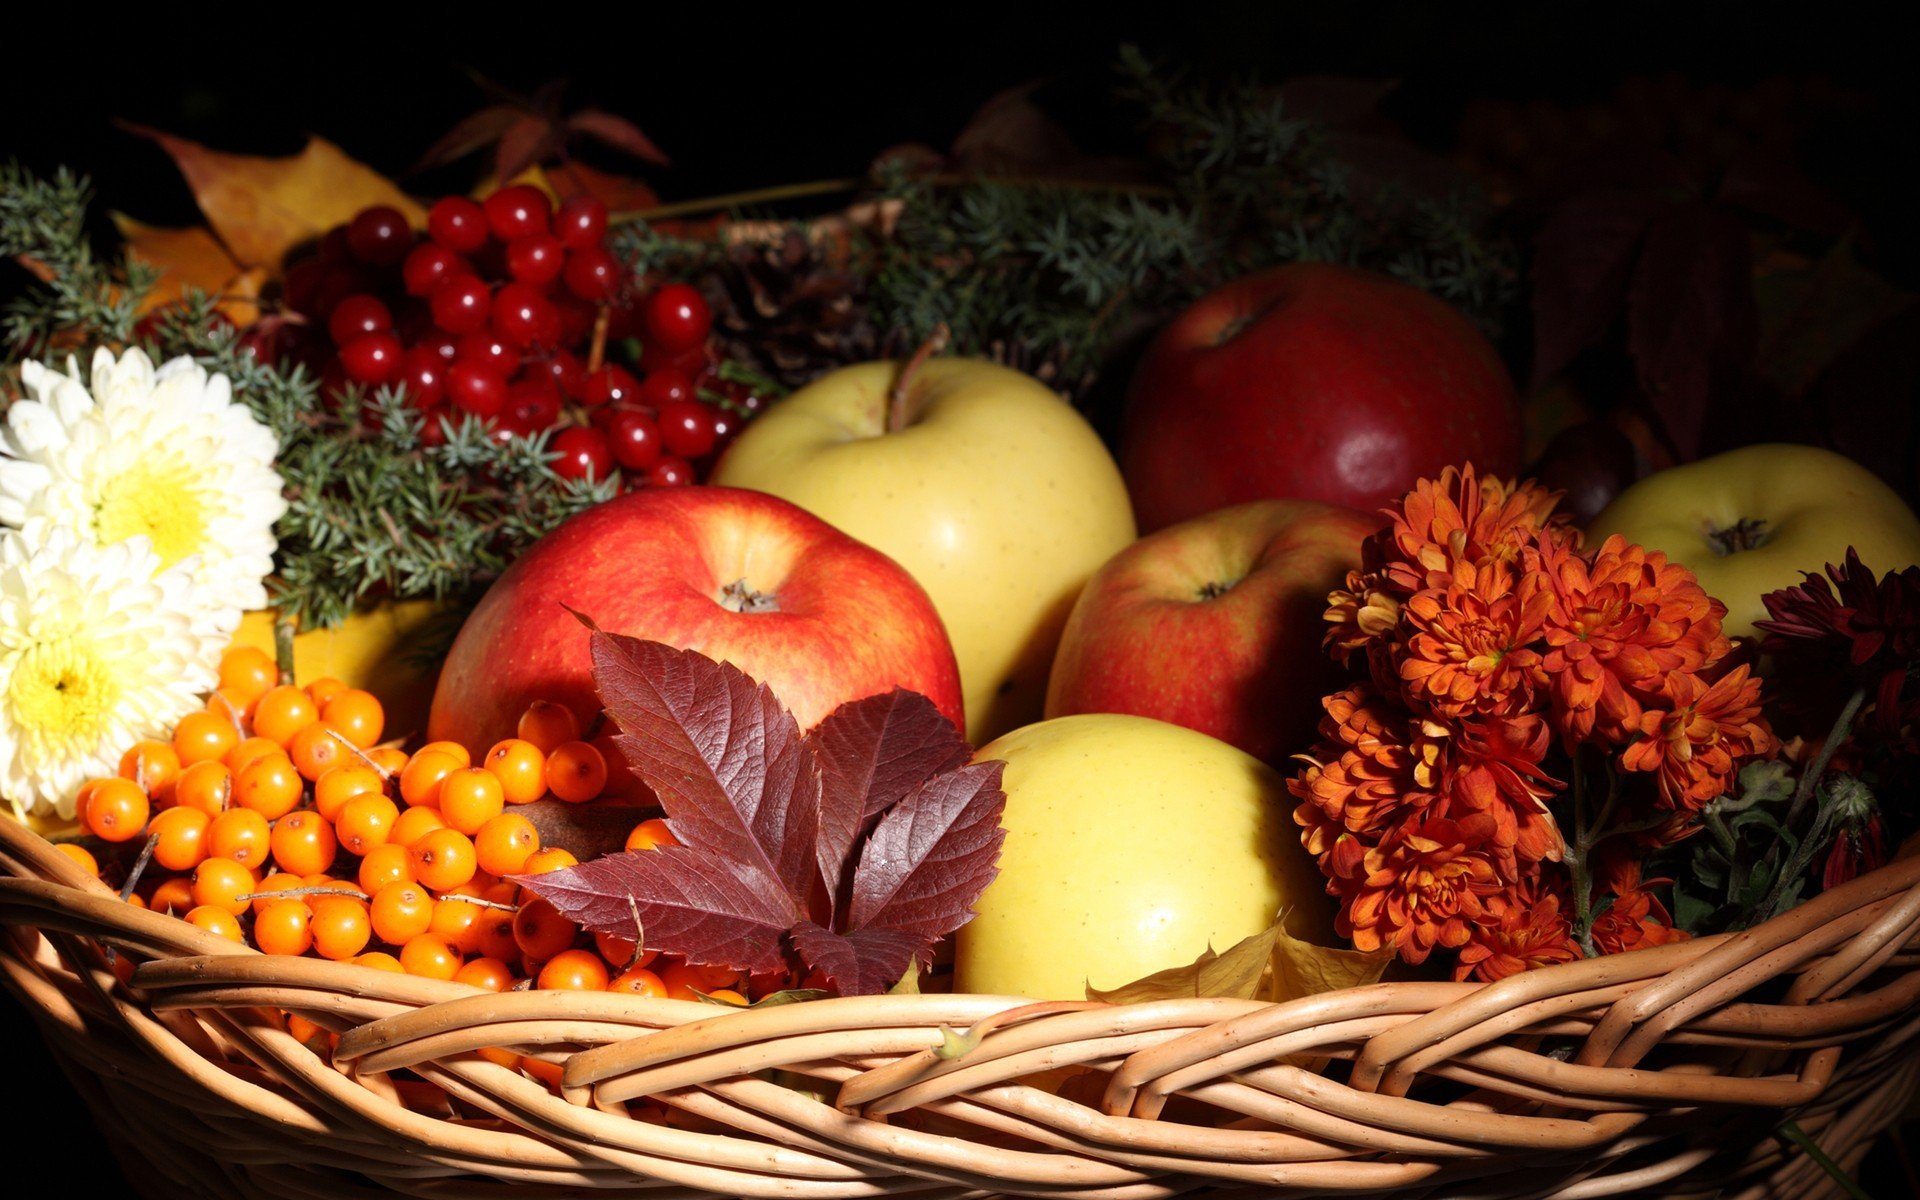 Flowers and fruits wallpapers - Flowers Fruits Food Baskets Apples Wallpaper 1920x1200 339808 Wallpaperup